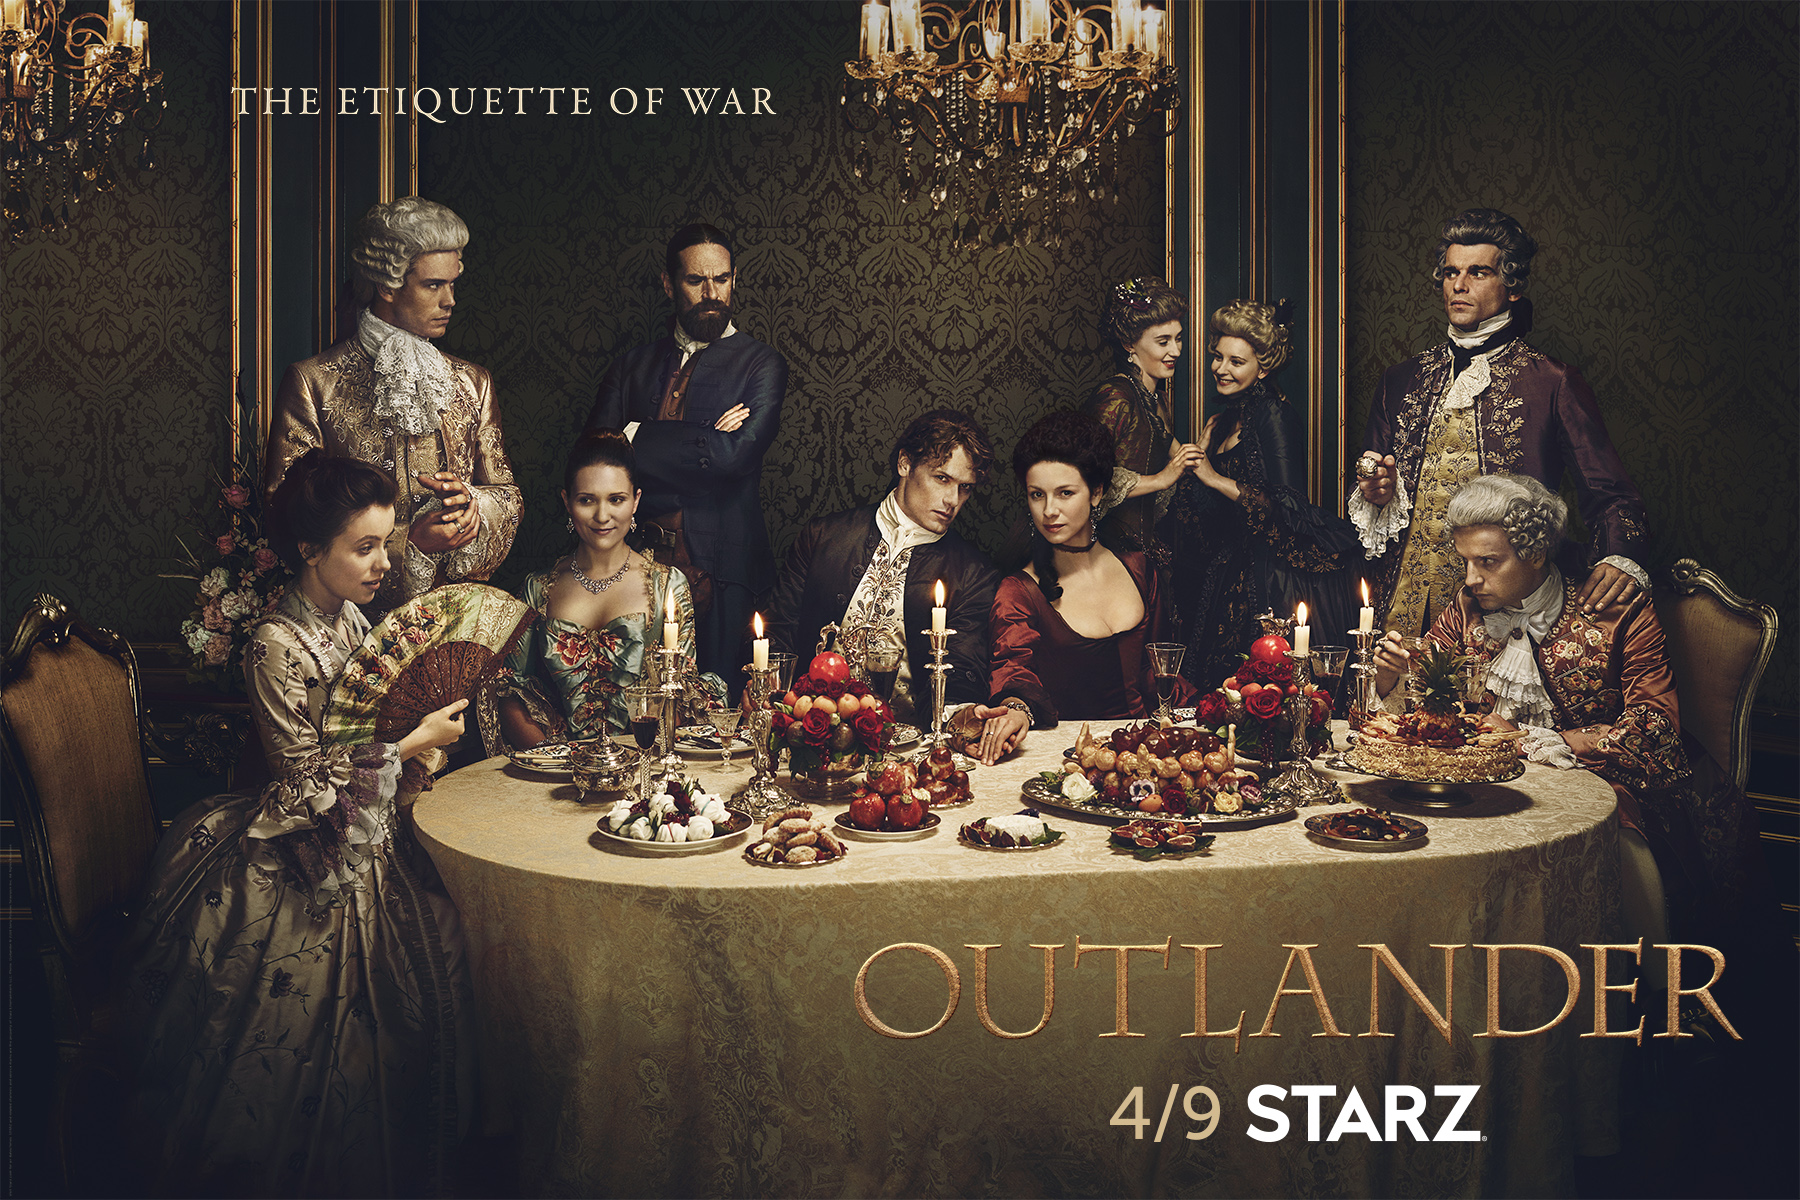 Outlander Season 2 - Etiquette of War